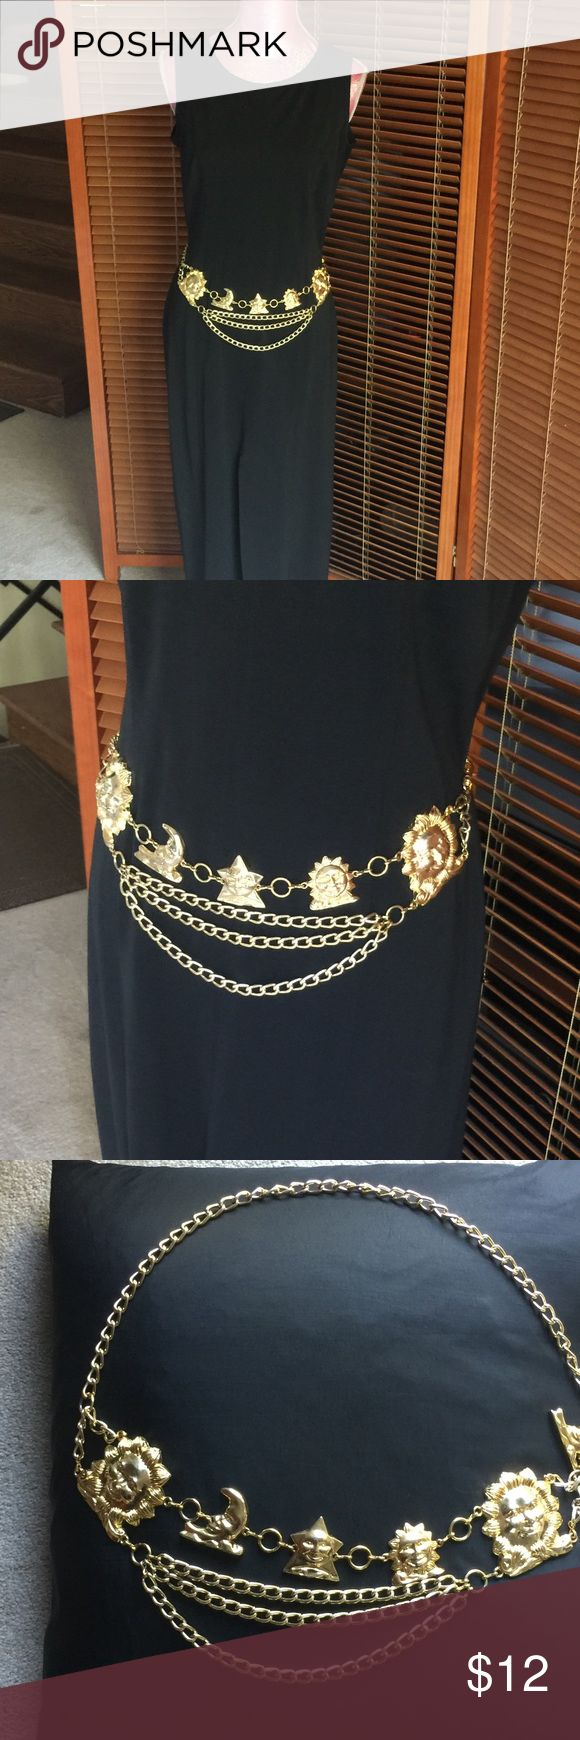 Gold tone chain belt VINTAGE chain belt adds sparkle and style to your favorite outfits. There's no stopping you when you have this secret weapon in your accessory arsenal.  Adjustable metal belt features smiling sun and moon faces and a lobster claw closure. PRICE IS FIRM!!!! Accessories Belts